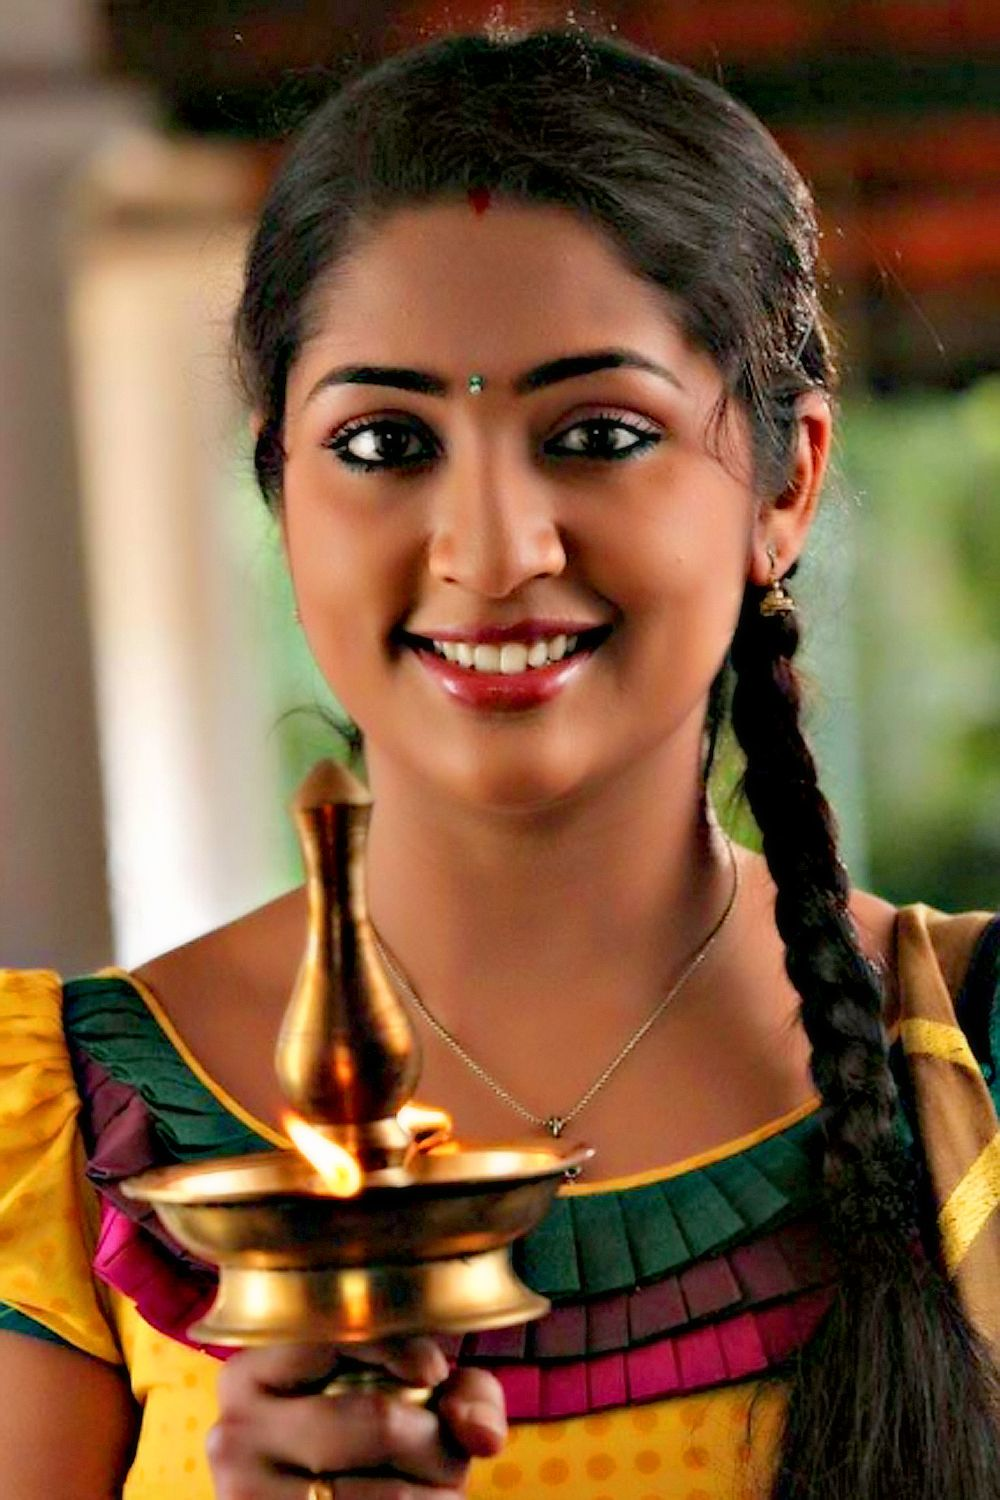 navya nayar as homely actress hd photos of malayalam actress and